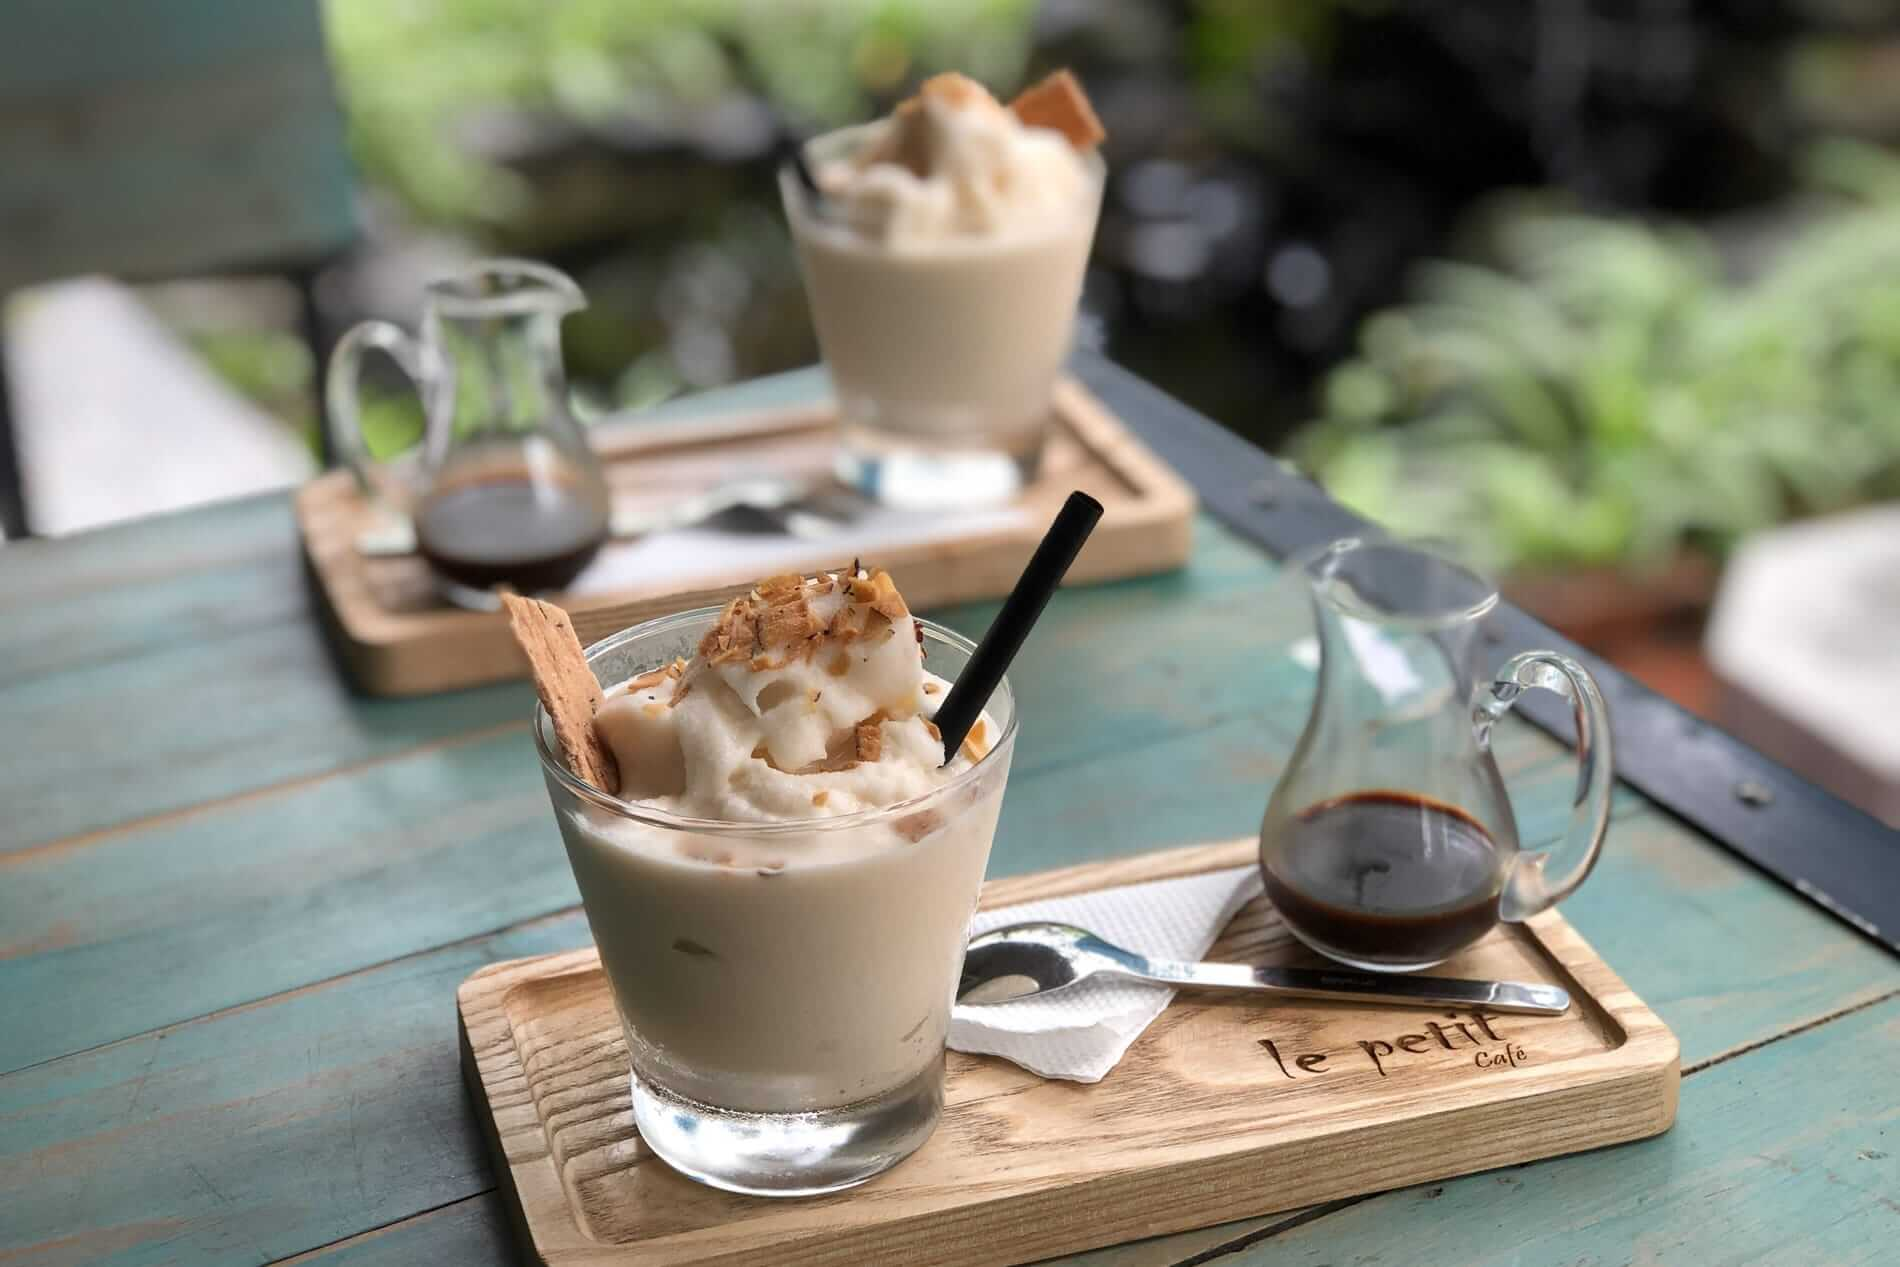 Coconut coffee - Cafe in Da Nang